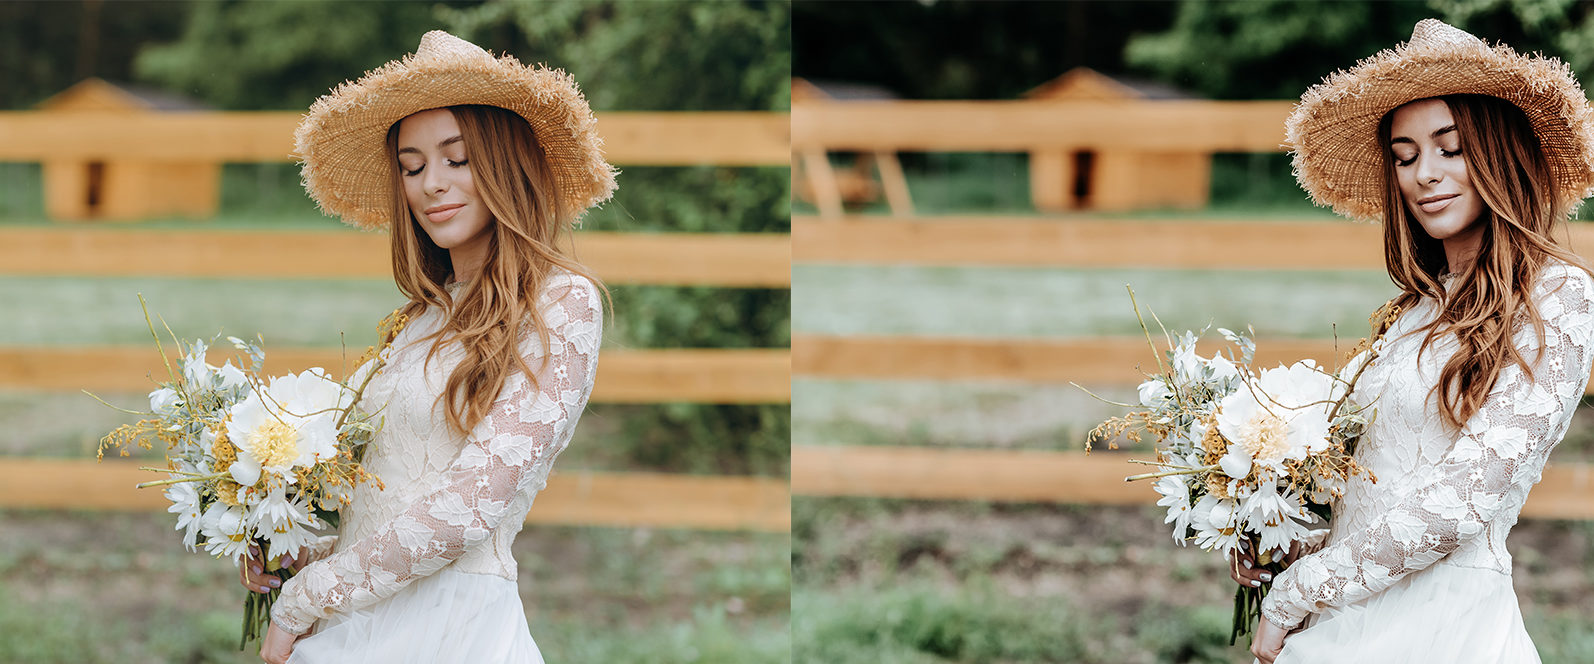 8 x Willow Brown Toned Lightroom Presets, Couple and Engagement Presets, Wedding Presets - 4 Willow -